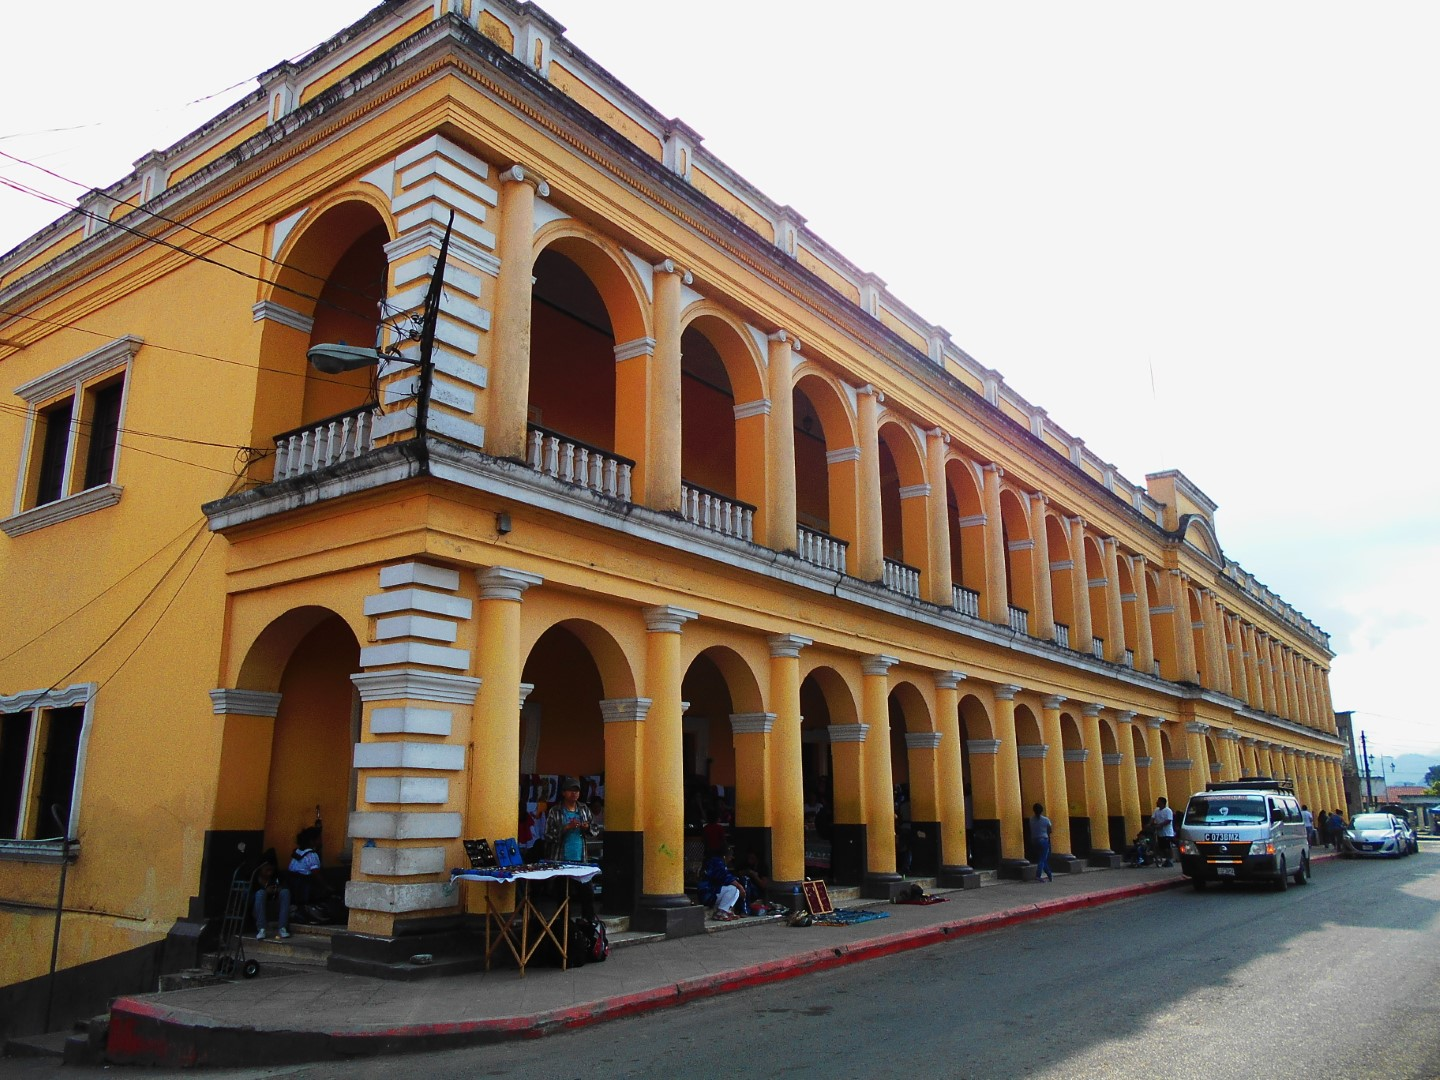 Civil building off Parque Central in Coban, Guatemala